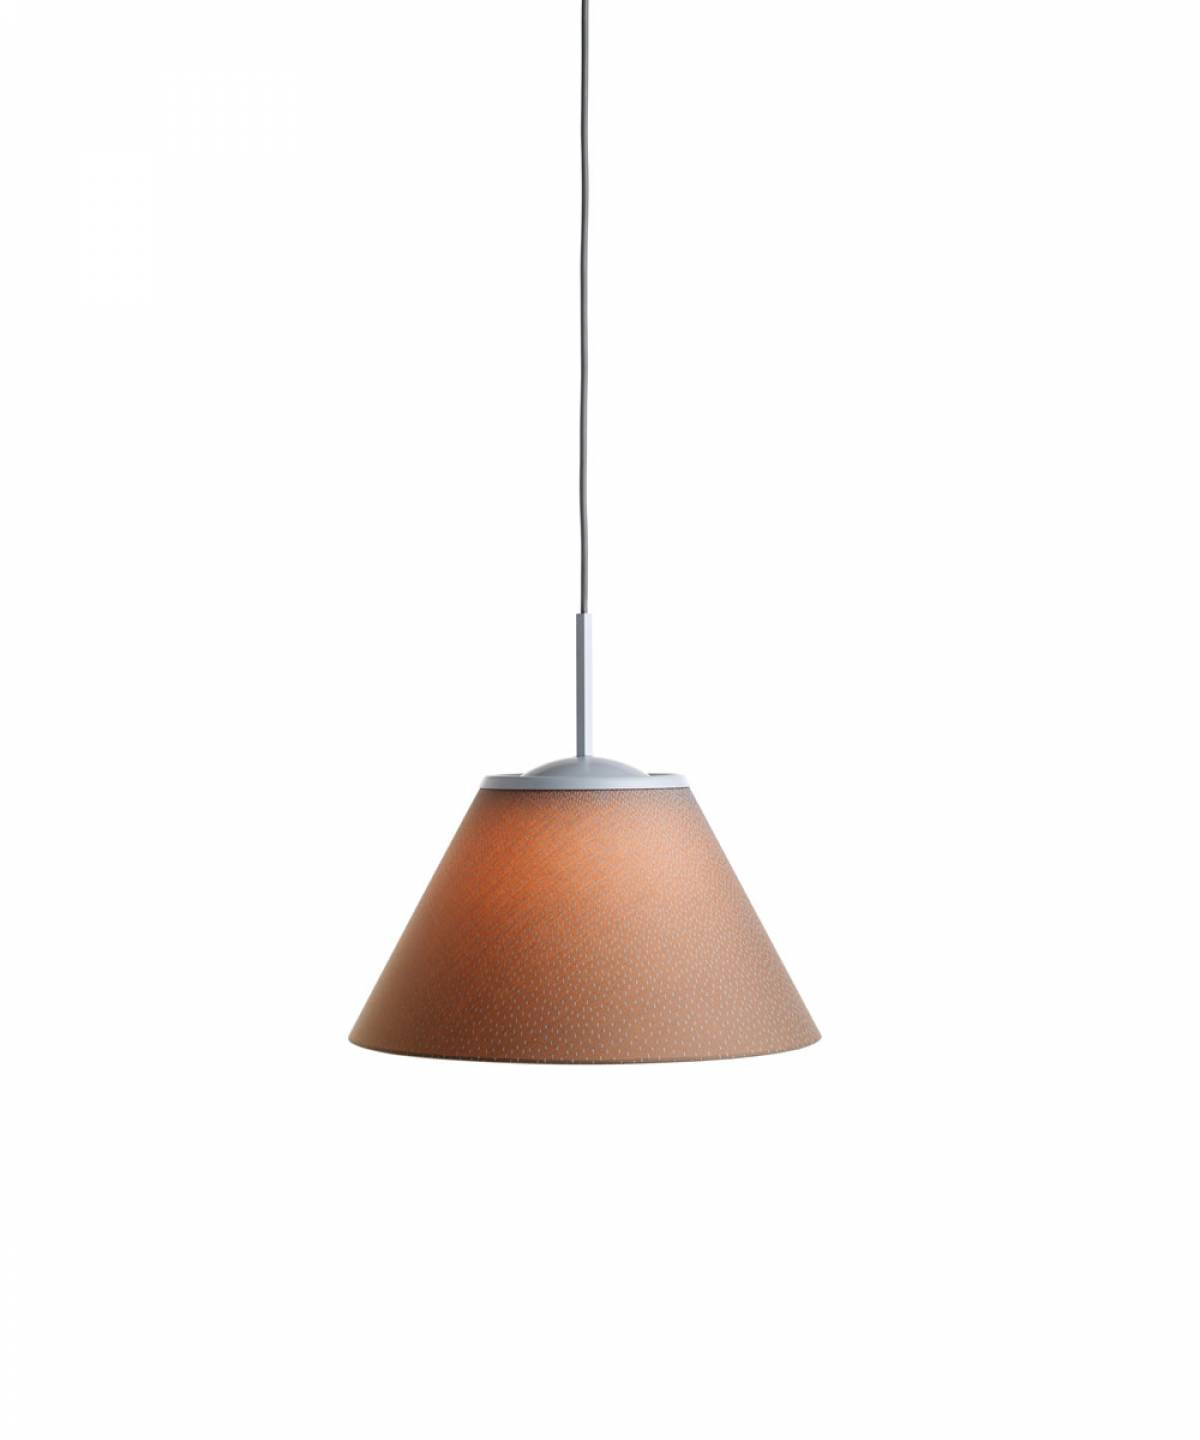 2 Cappuccina suspension lamp Luceplan